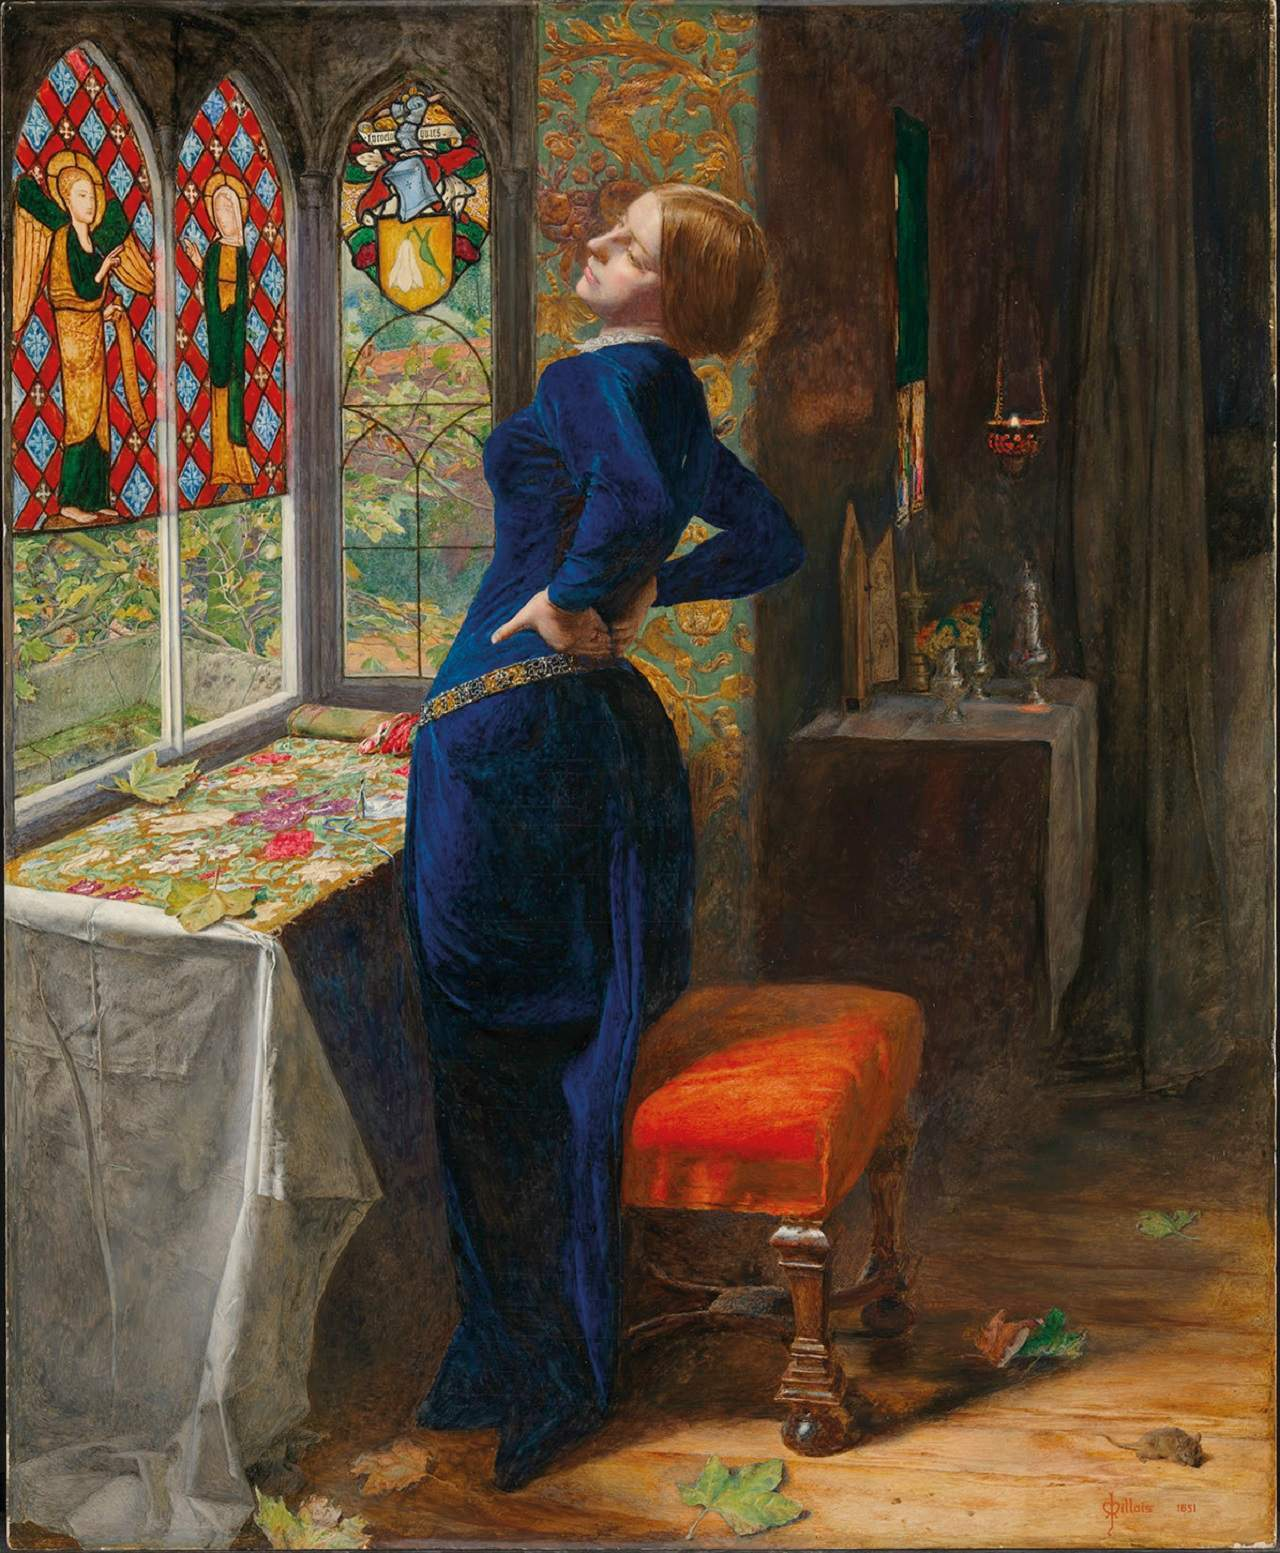 Through the looking glass: what the pre-Raphaelites took from Van Eyck